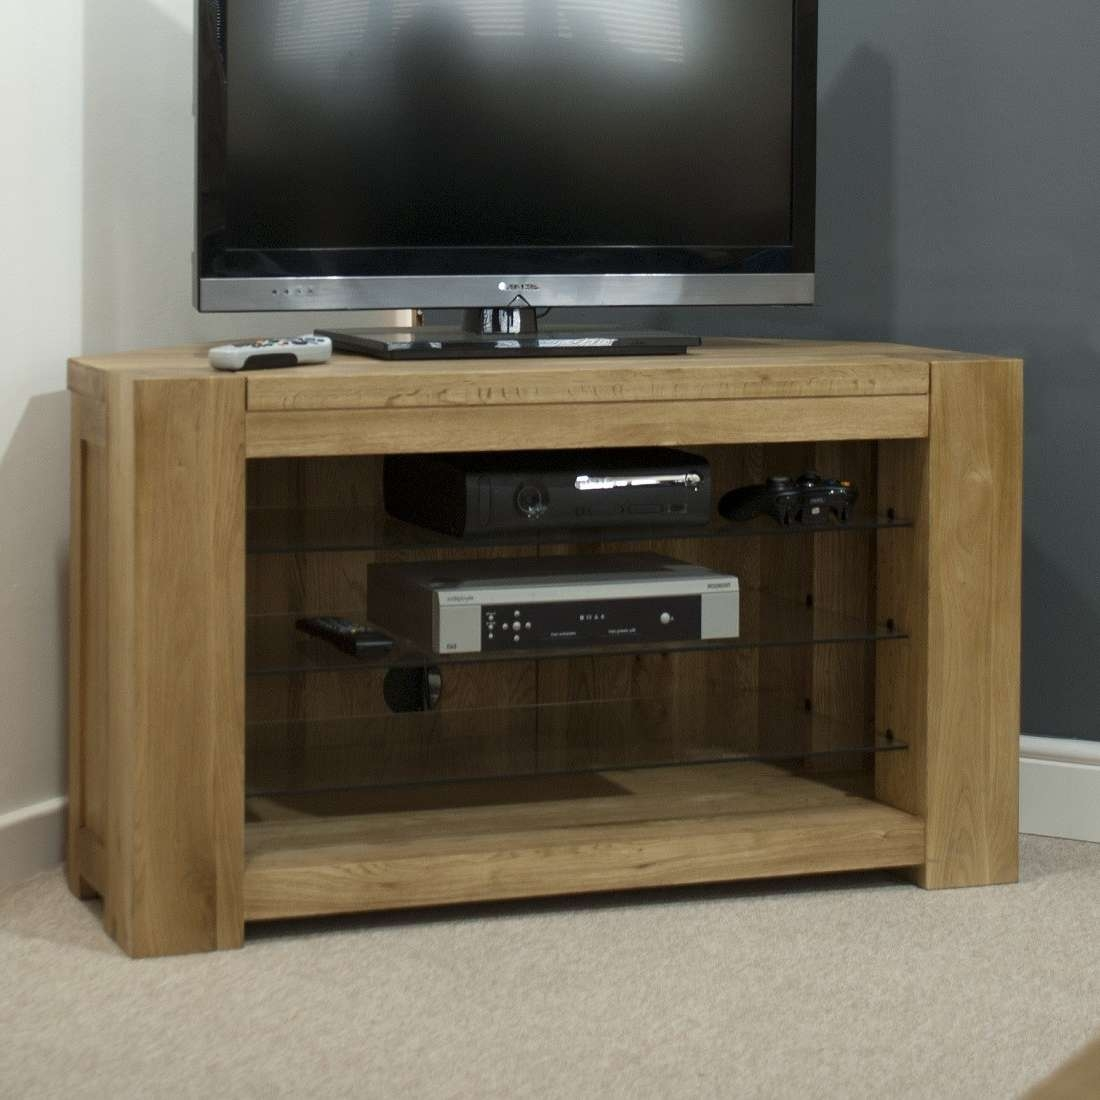 Trend Solid Oak Corner Tv Unit | Oak Furniture Uk Intended For Oak Tv Cabinets (View 17 of 20)